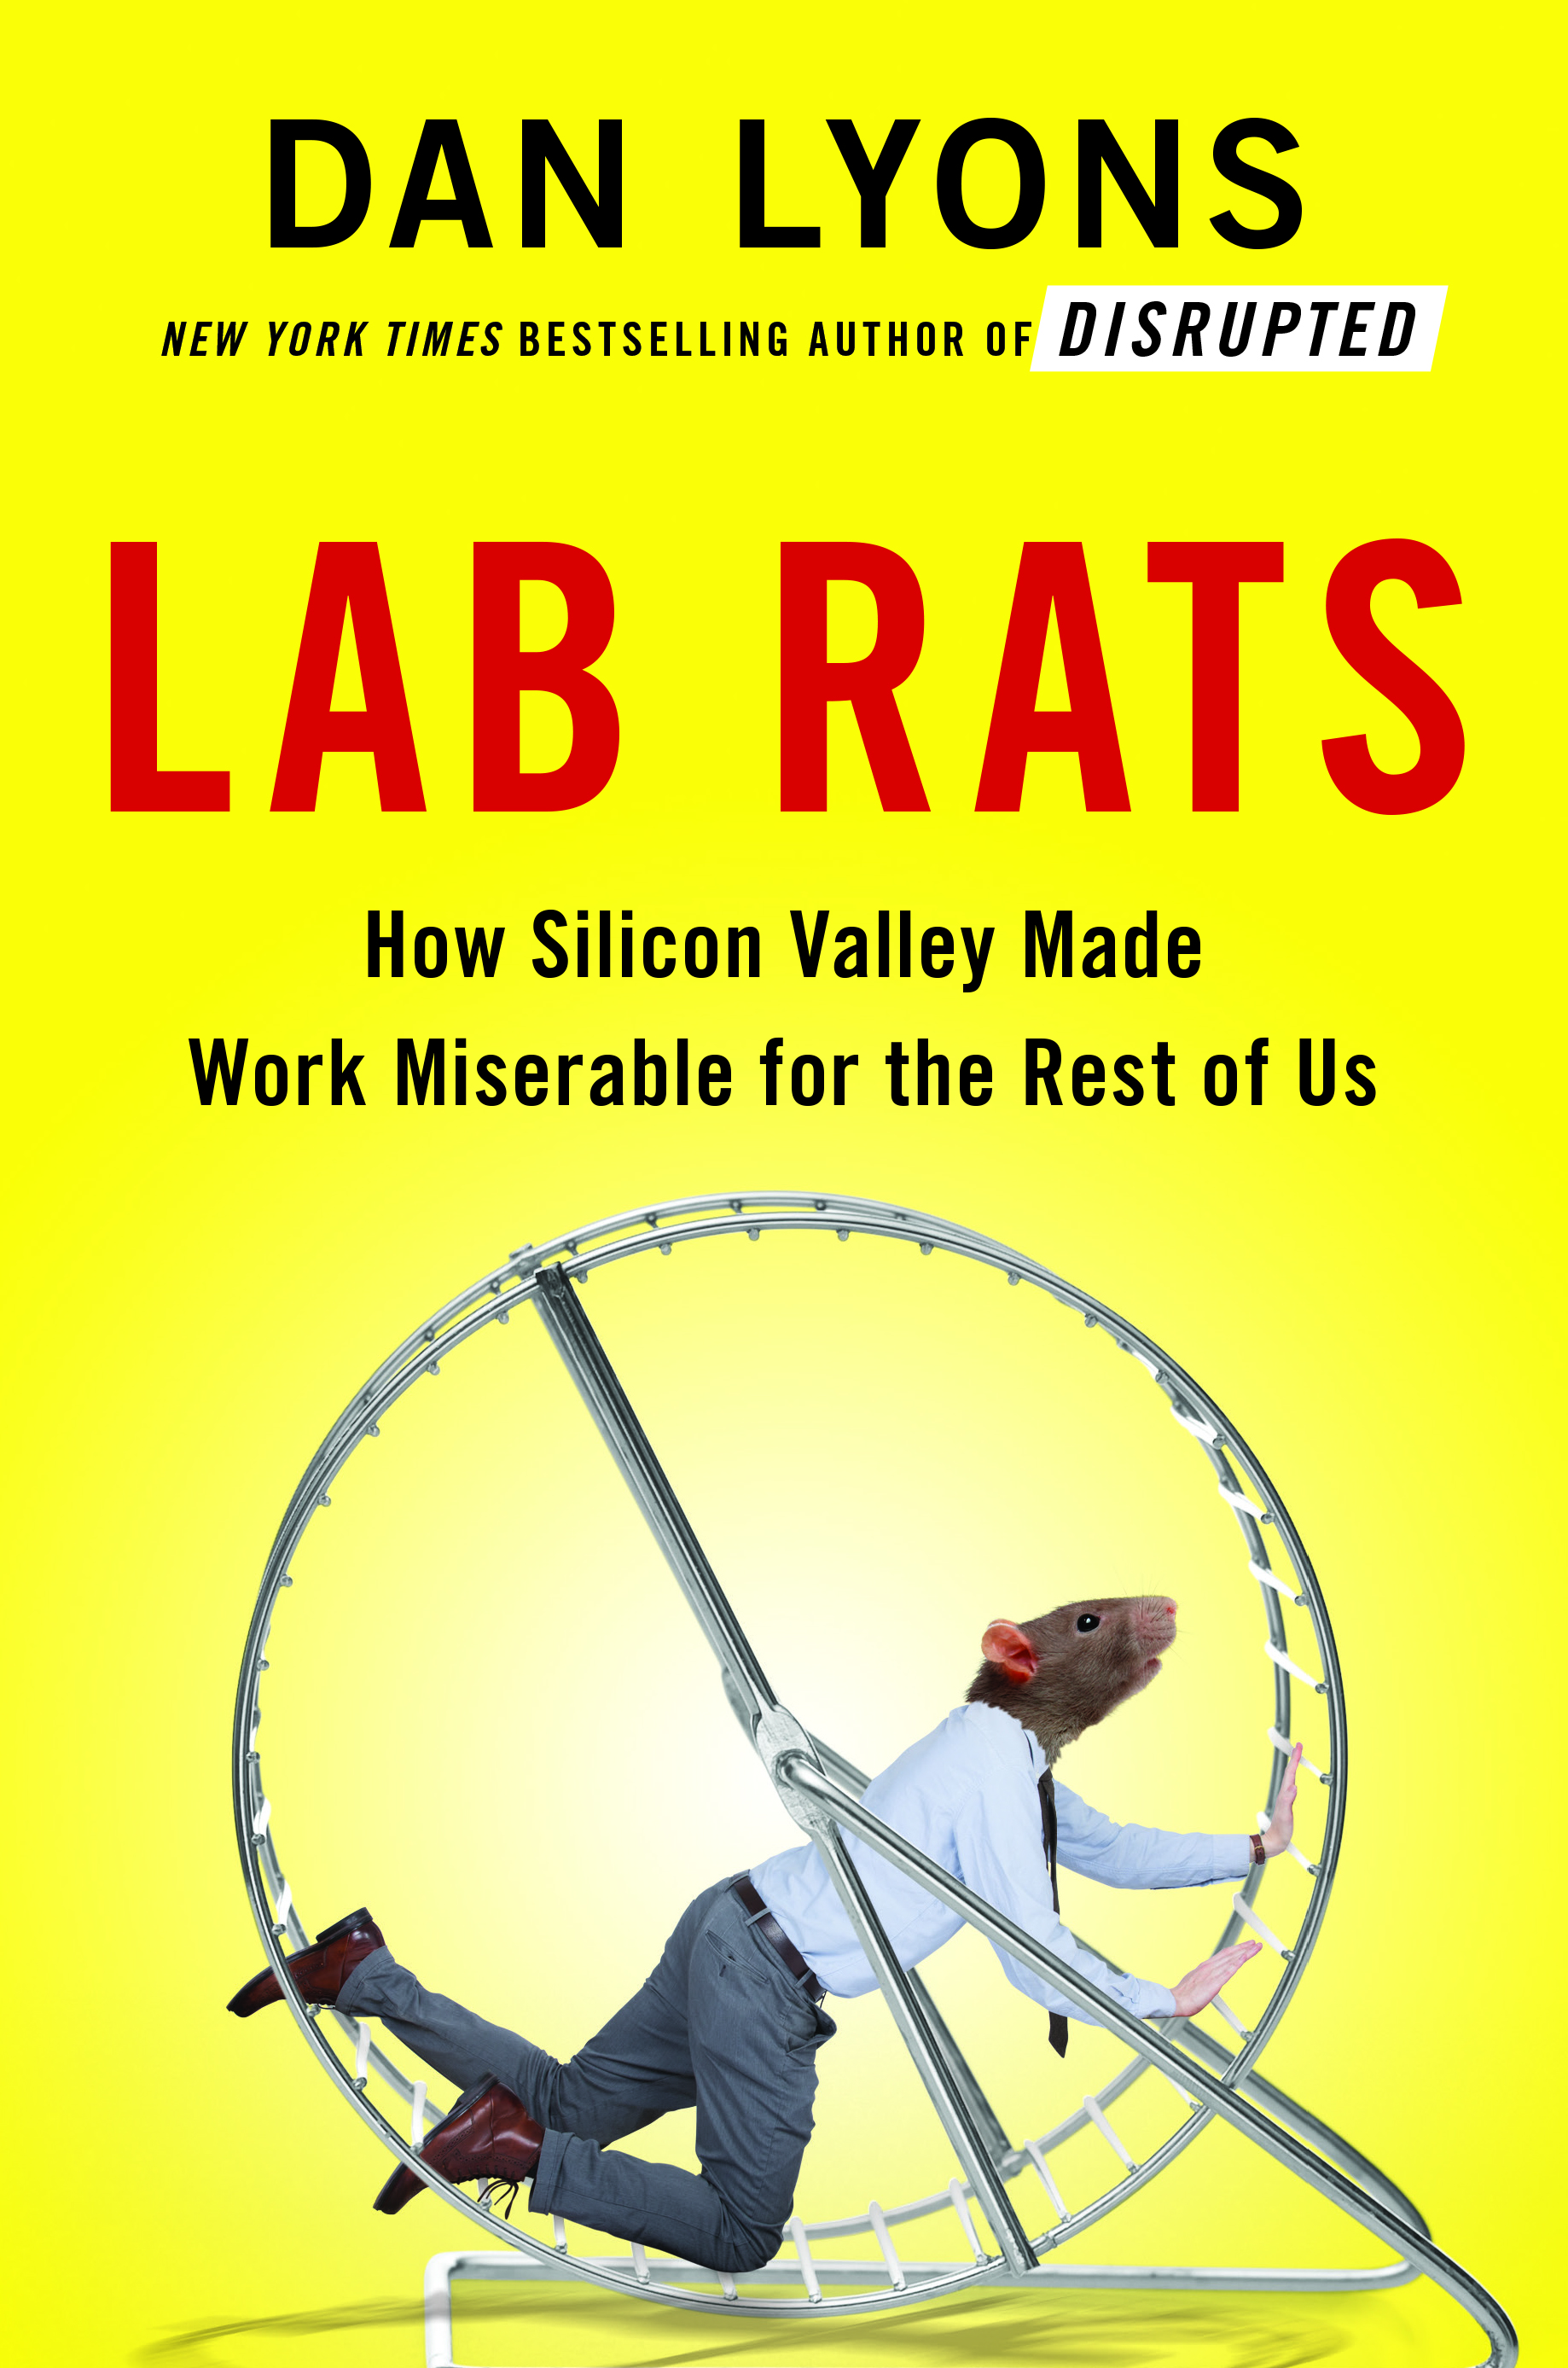 - LAB RATS by Dan LyonsAt a time of soaring corporate profits and plenty of HR lip service about